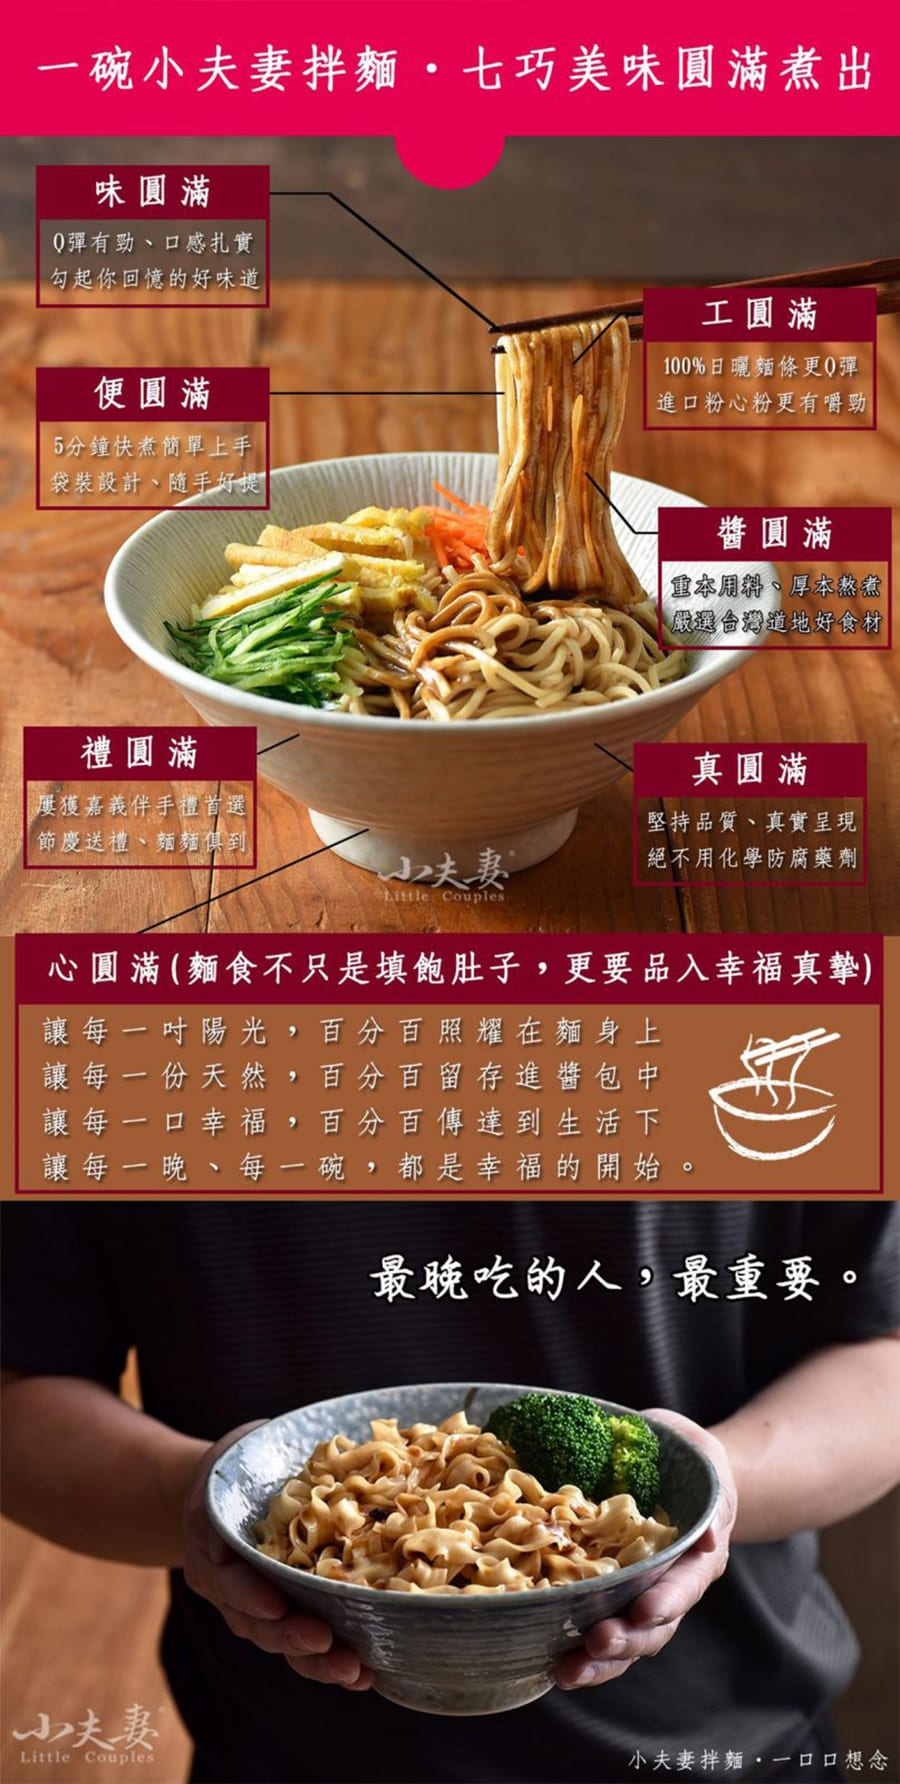 Little Couples Q Noodles - Features